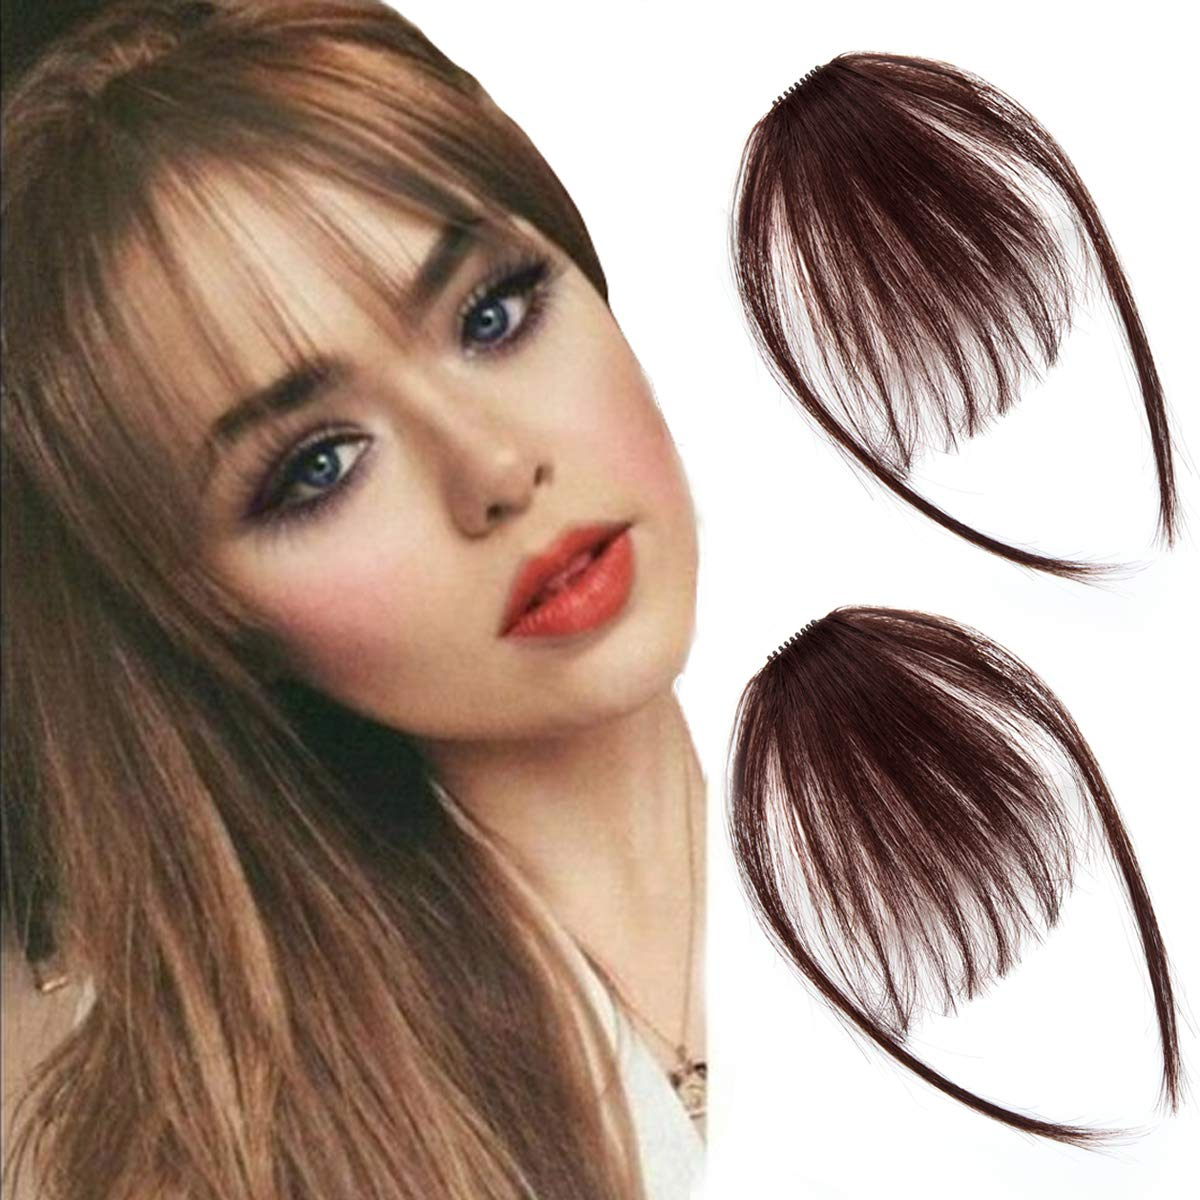 careonline 2PCS Clip in Bangs Real Human Hair Bangs Extensions Remy Hair Air Bangs with Temples Dark Brown Bangs One Piece Clip in Fringe Hair Extensions for Women